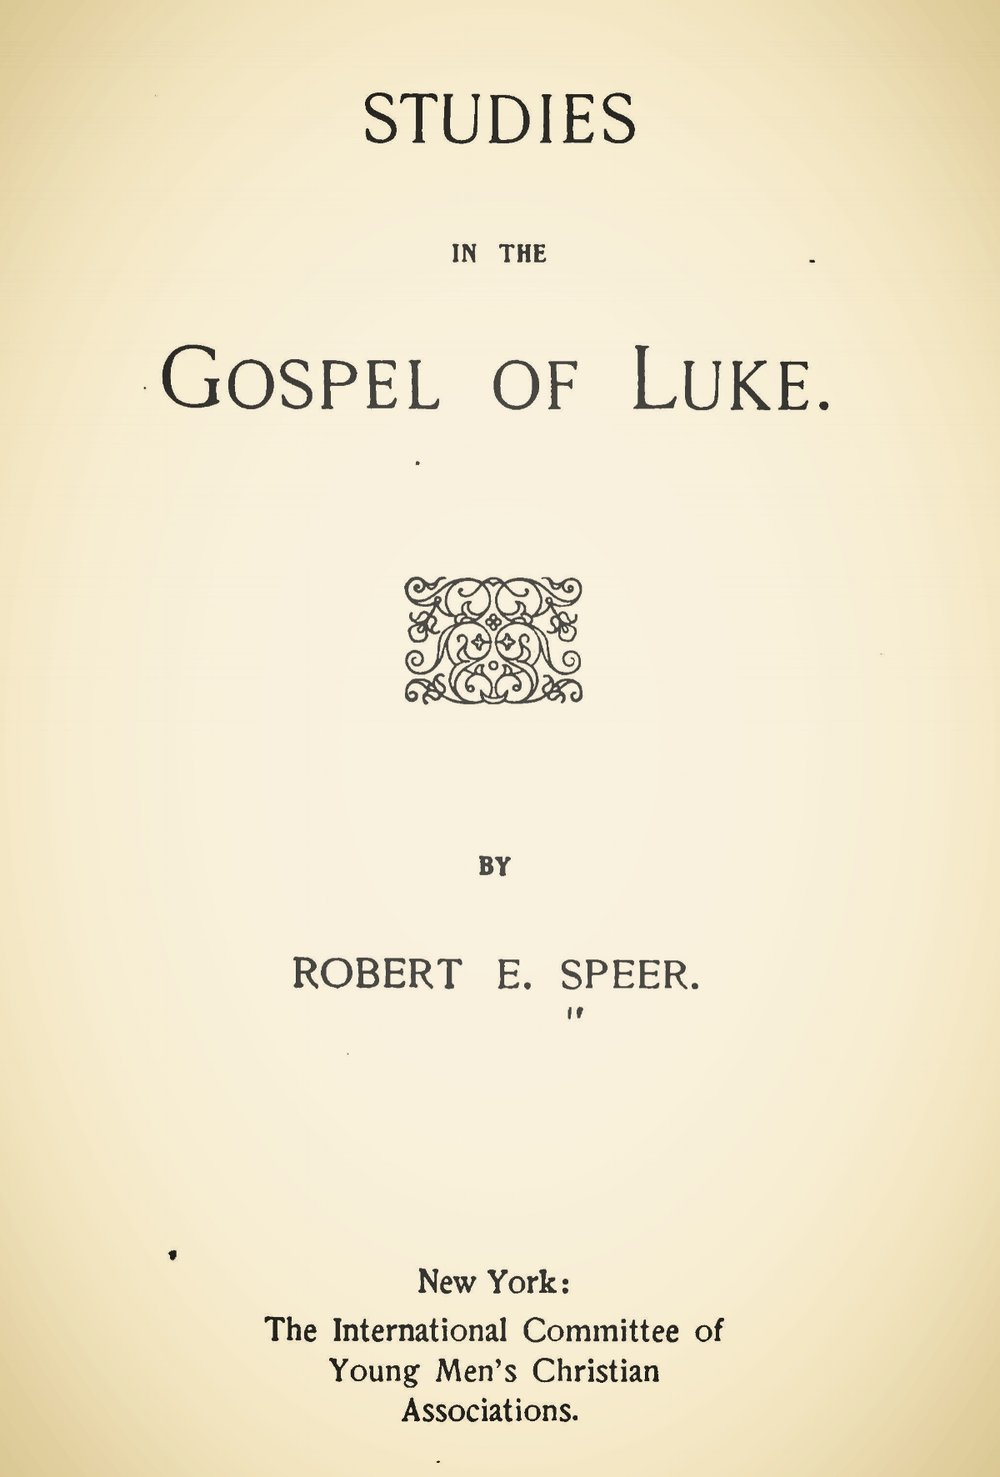 Speer, Robert Elliott, Studies in the Gospel of Luke Title Page.jpg